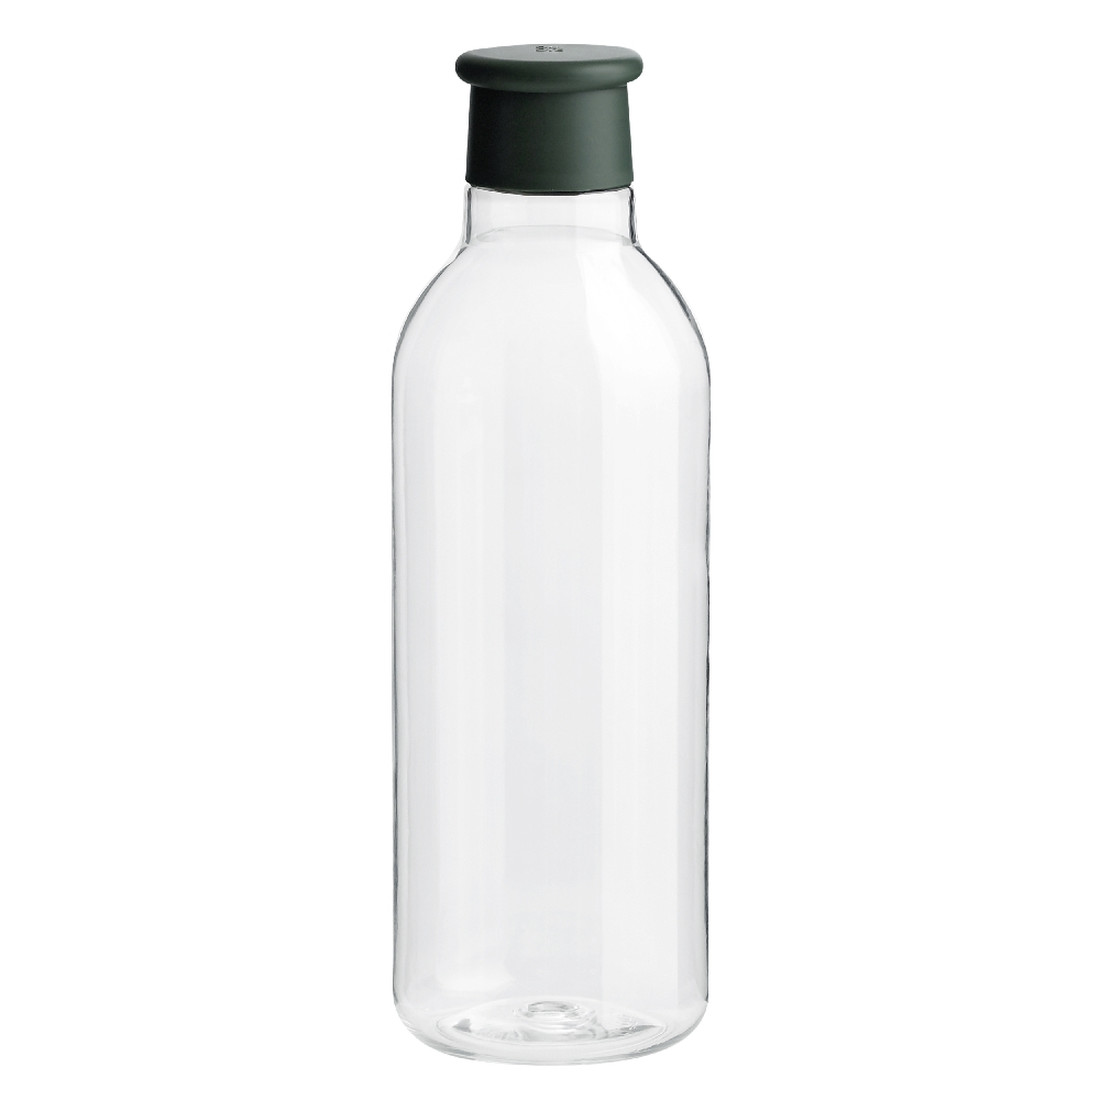 DRINK-IT - Tritan® Trinkflasche 0.75l - dark green RIG-TIG by Stelton